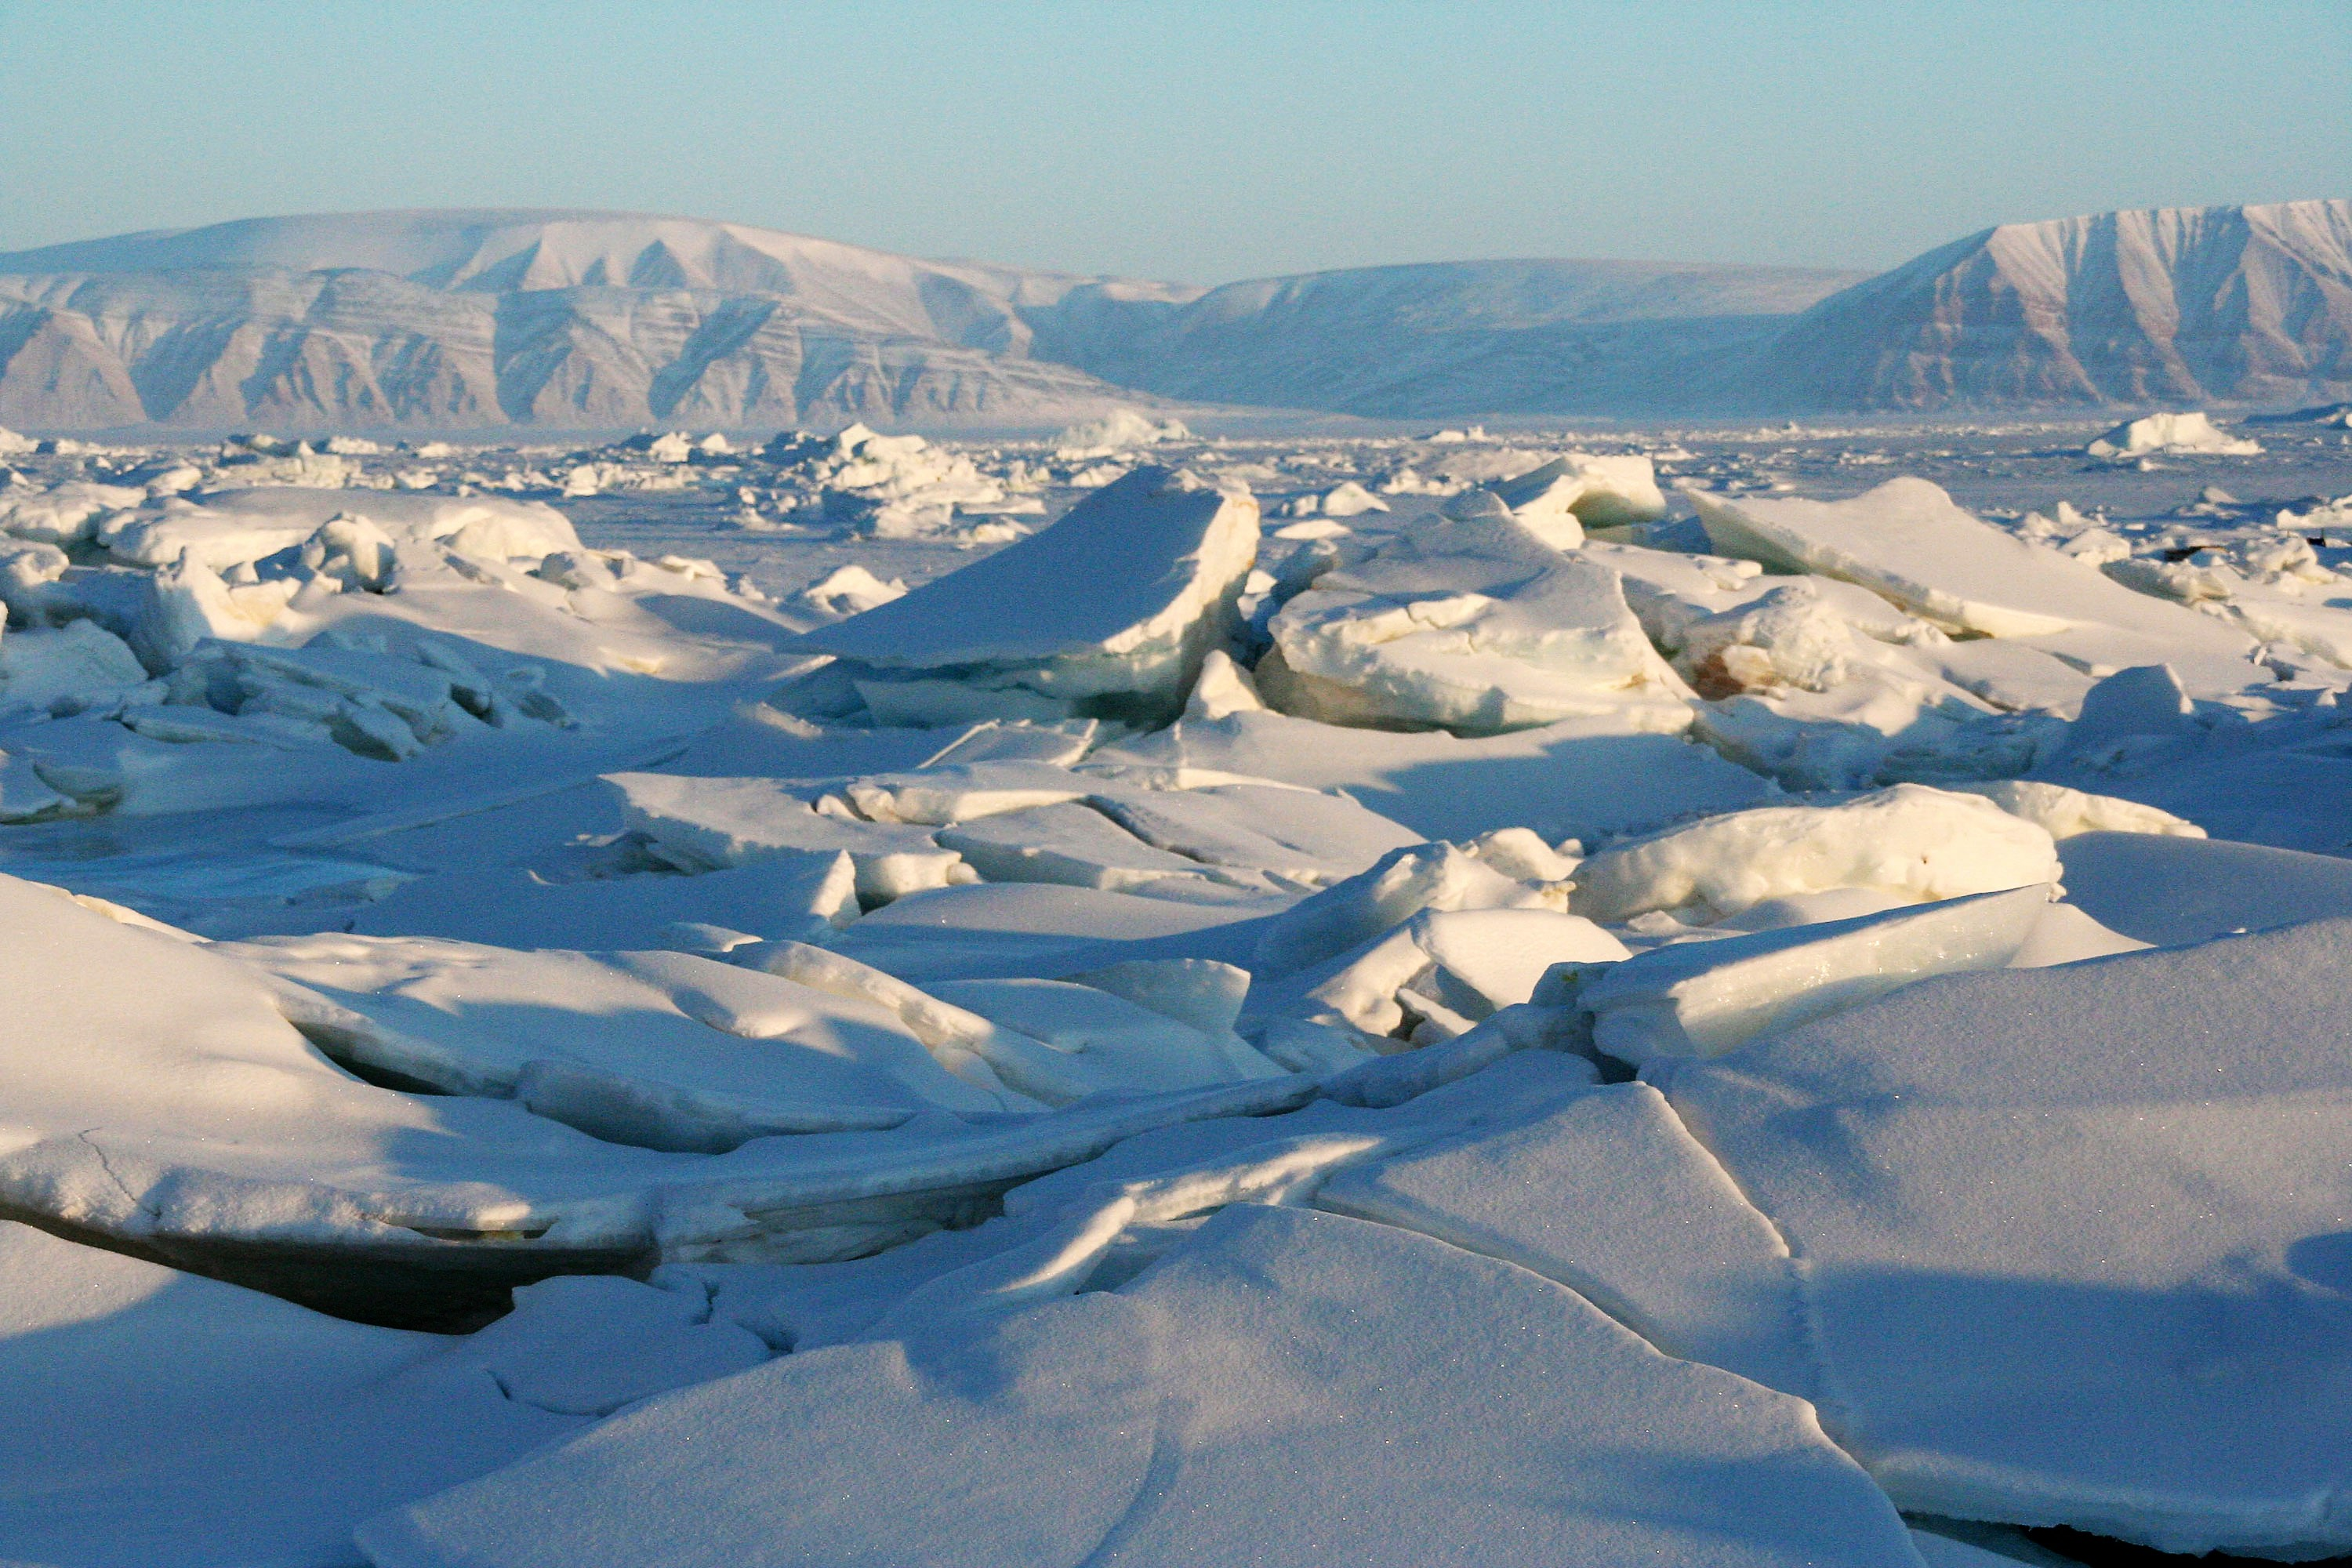 Strong winds caused sea ice to crack and buckle off the coast of Greenland. Credit: Andy Mahoney, NSIDC